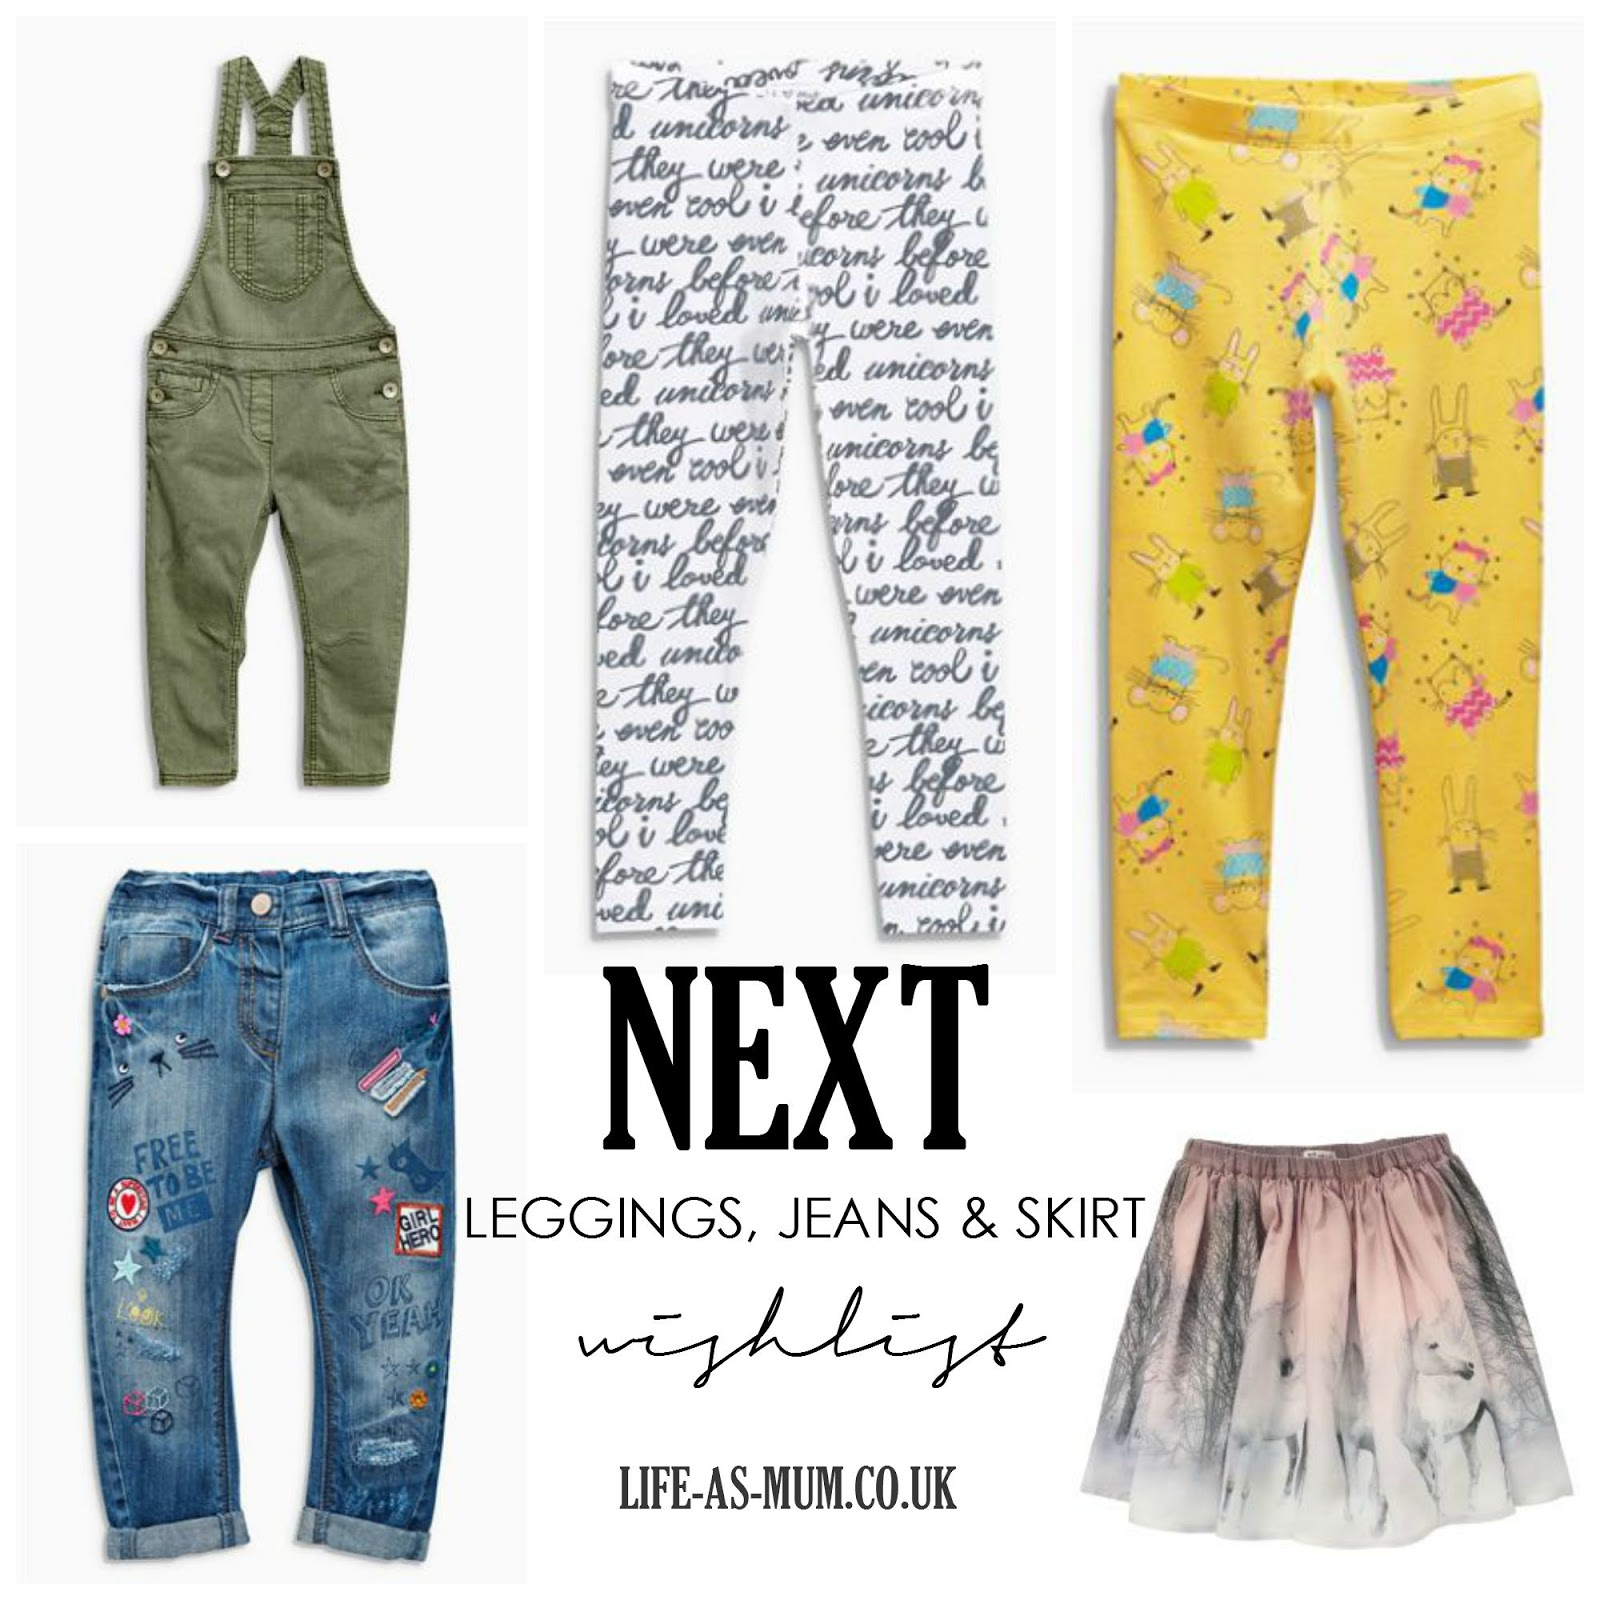 Next clothing for women